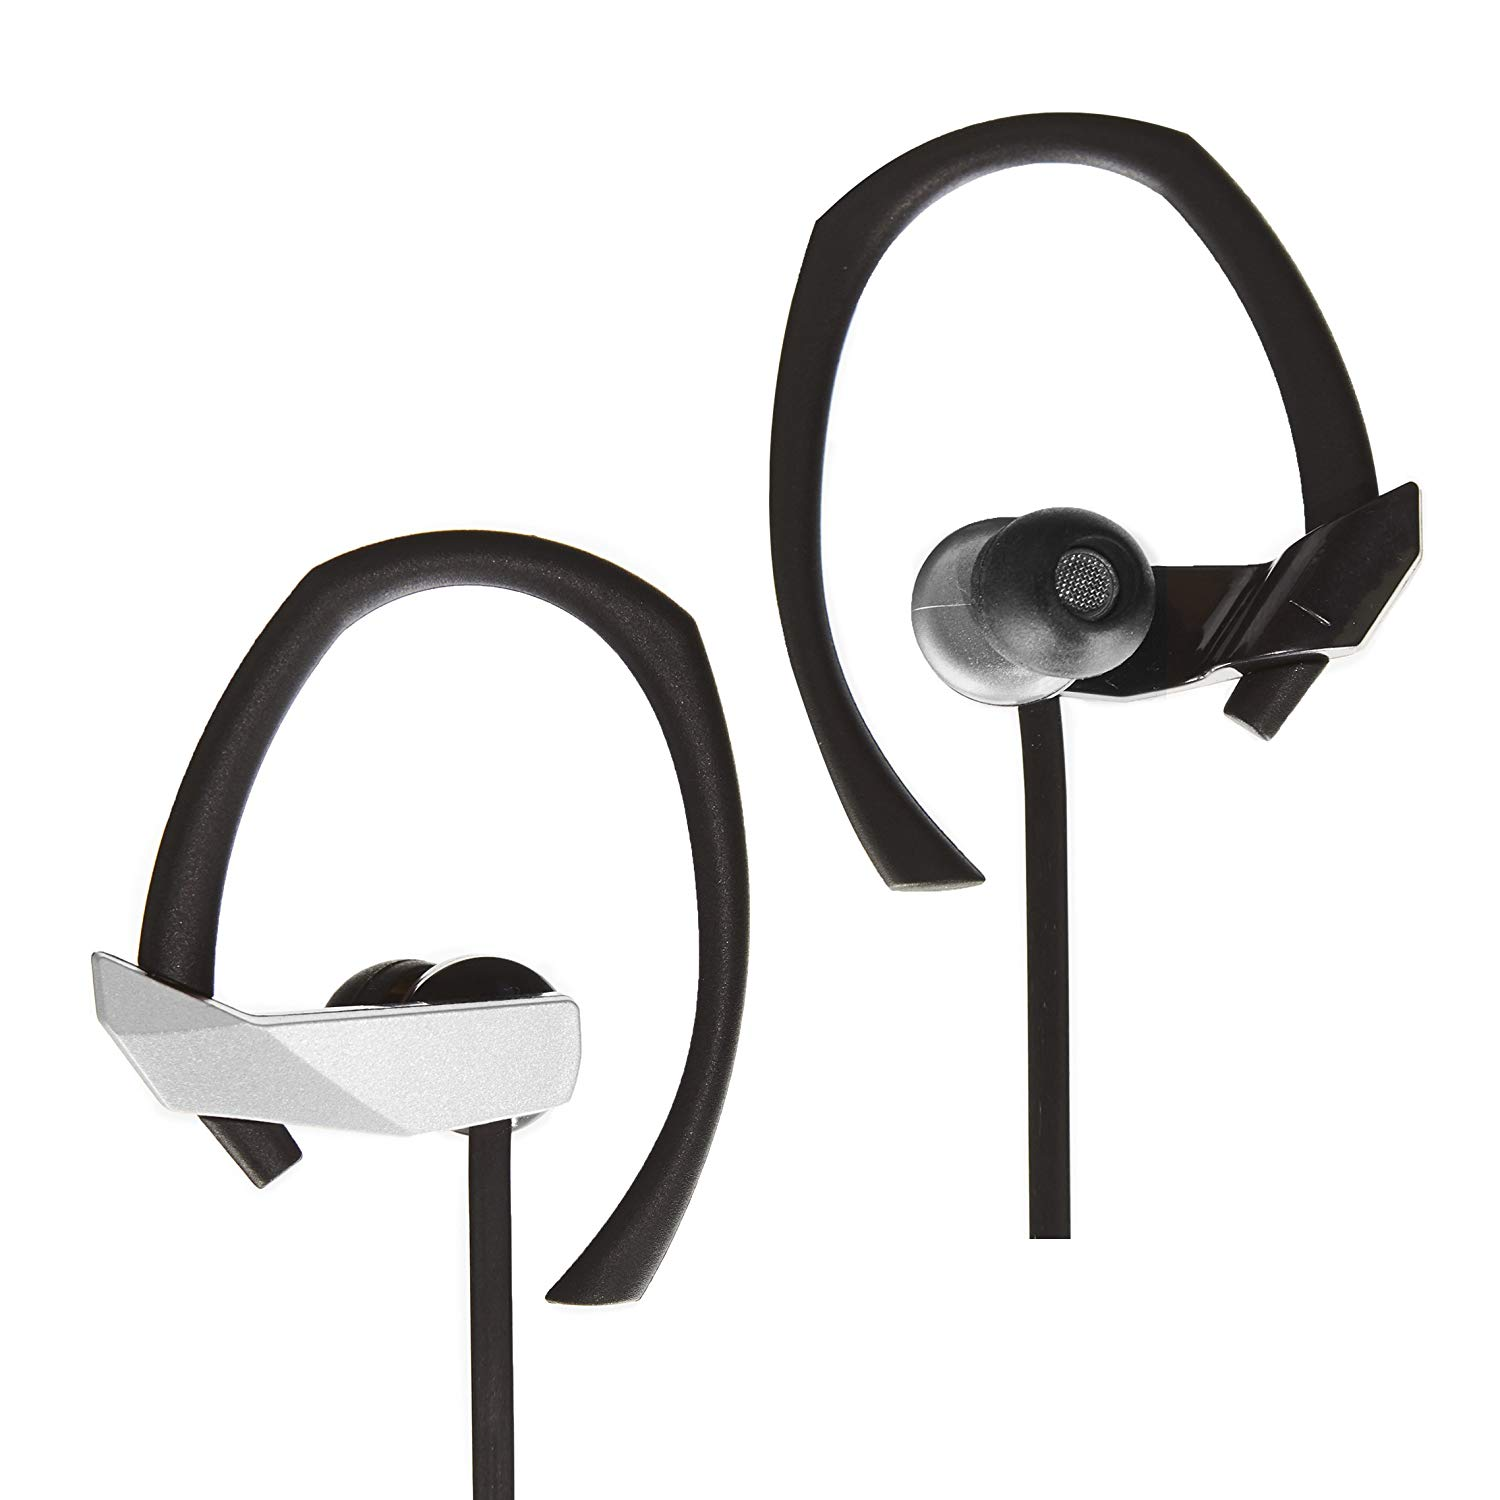 b9c18508941 Cheap Good Sport Earbuds, find Good Sport Earbuds deals on line at ...